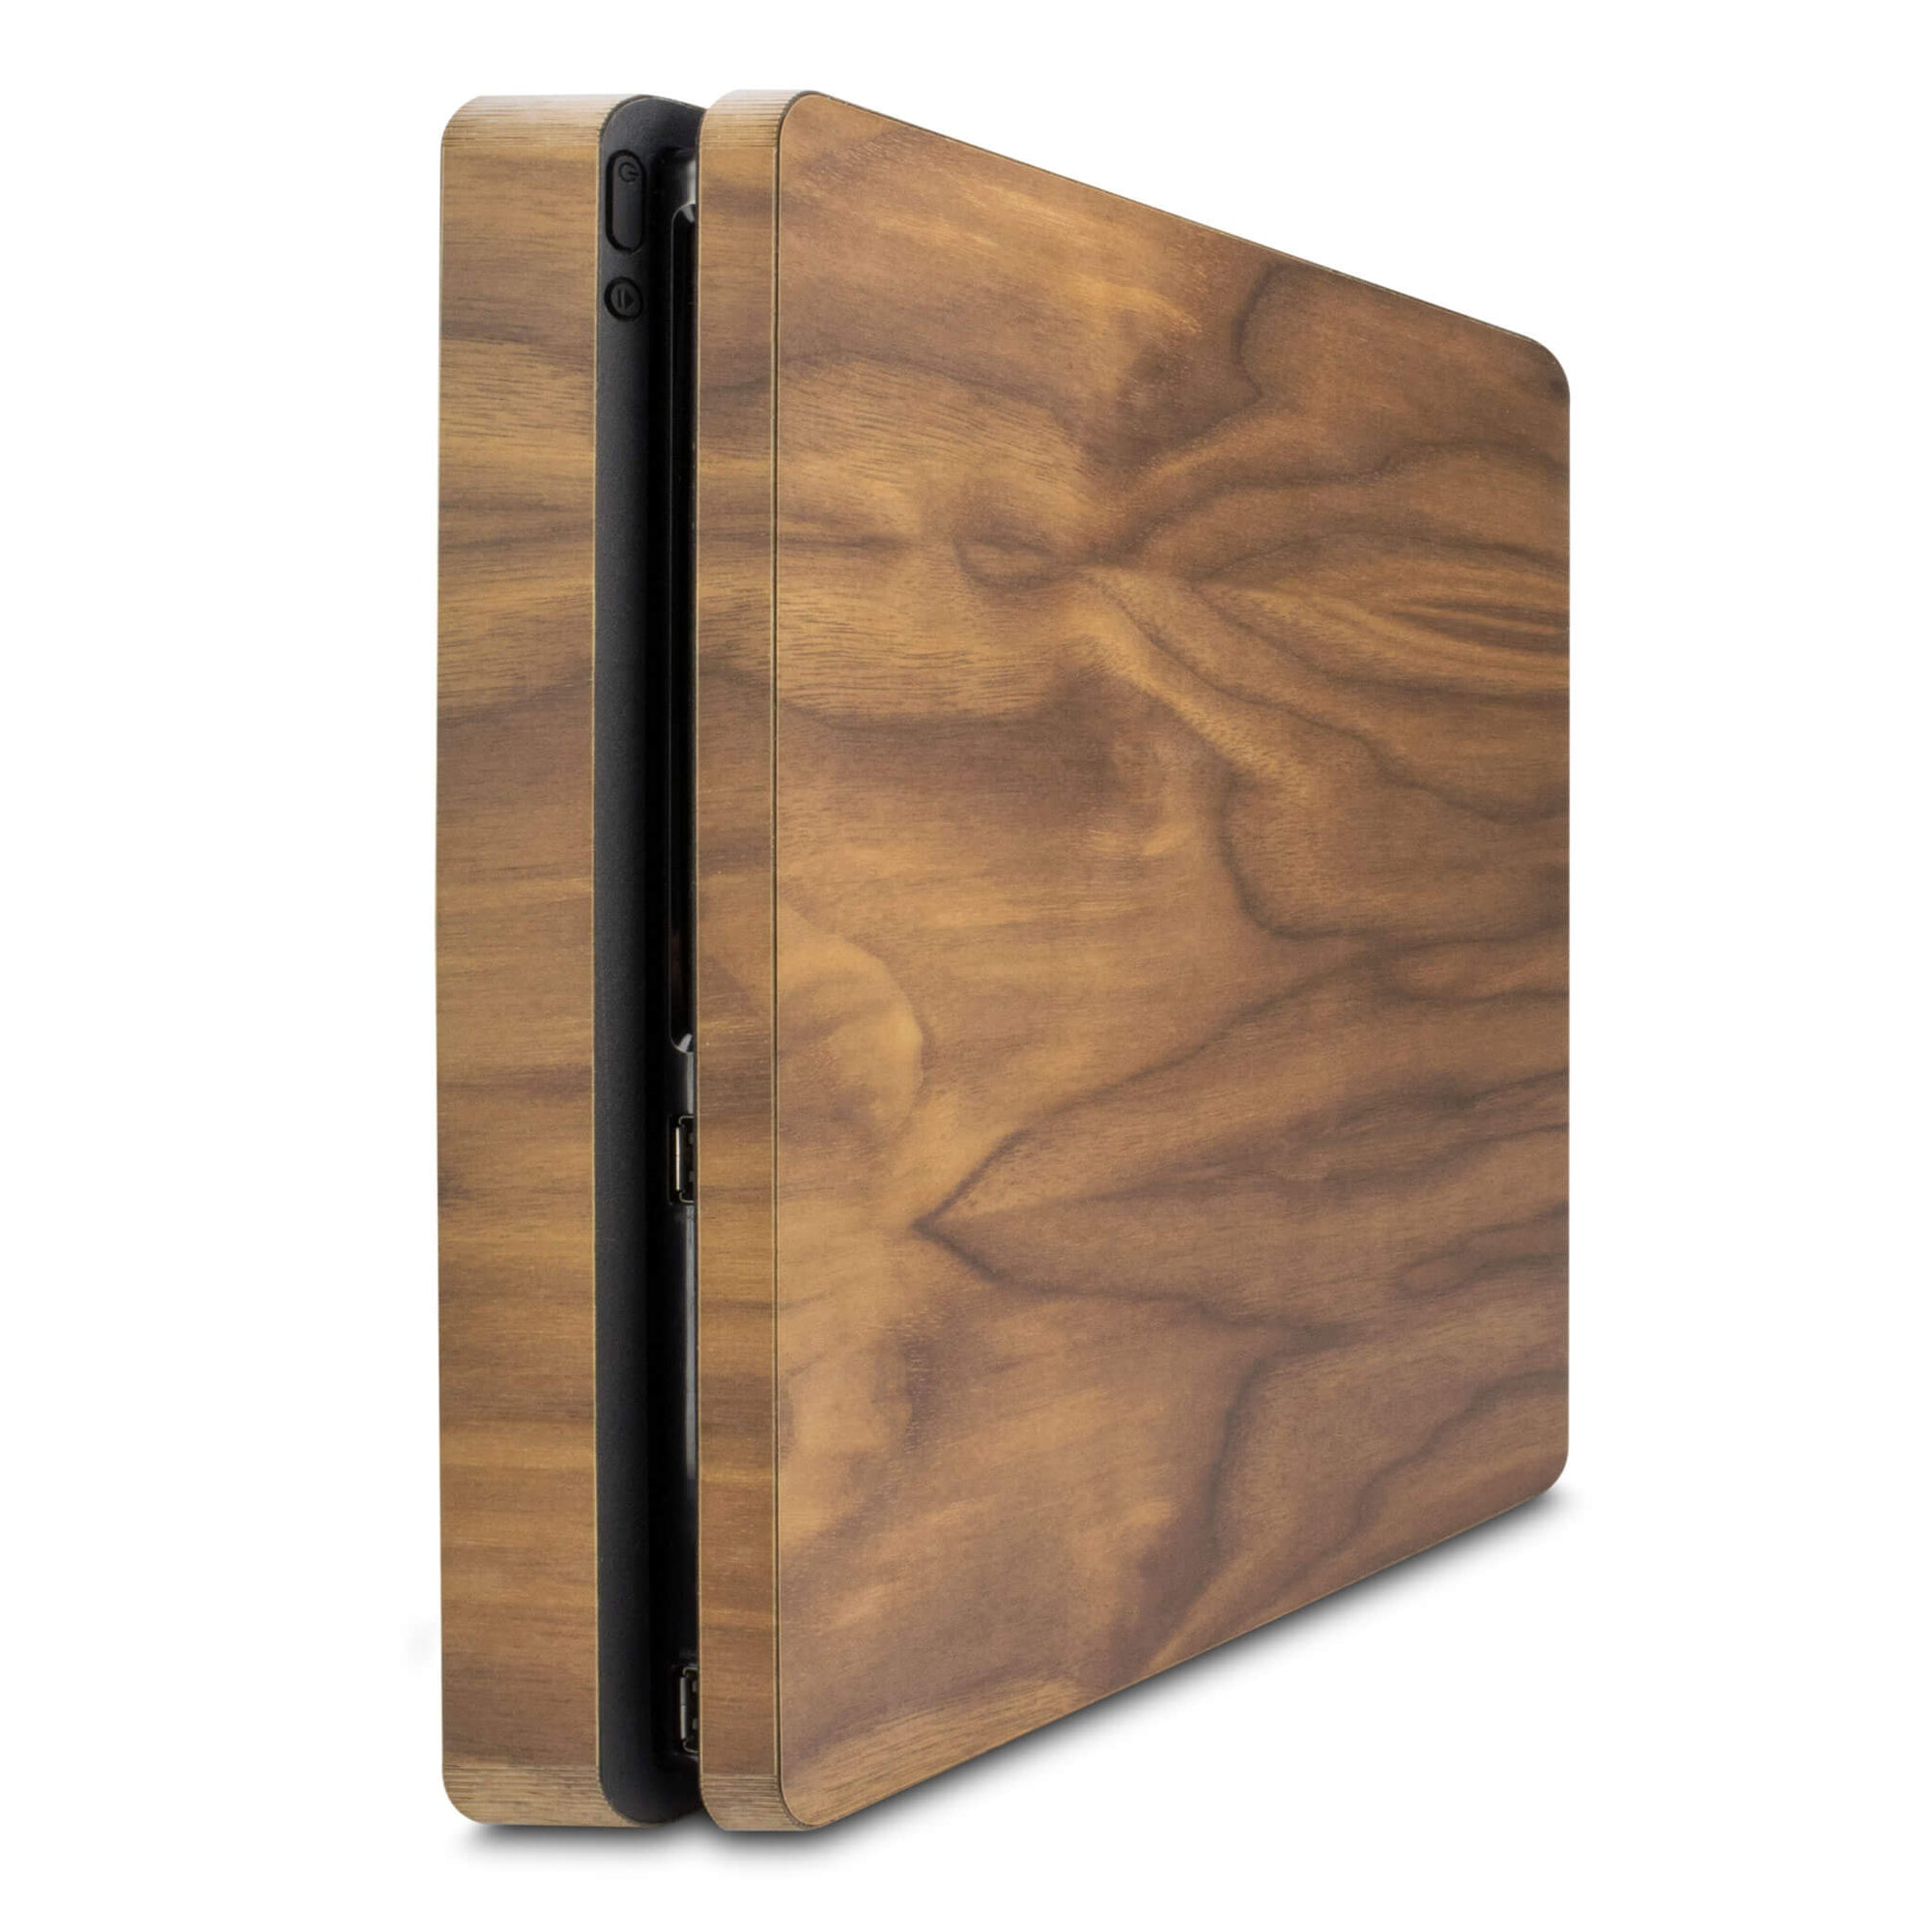 Playstation 4 Slim Walnut Wood Cover - balolo